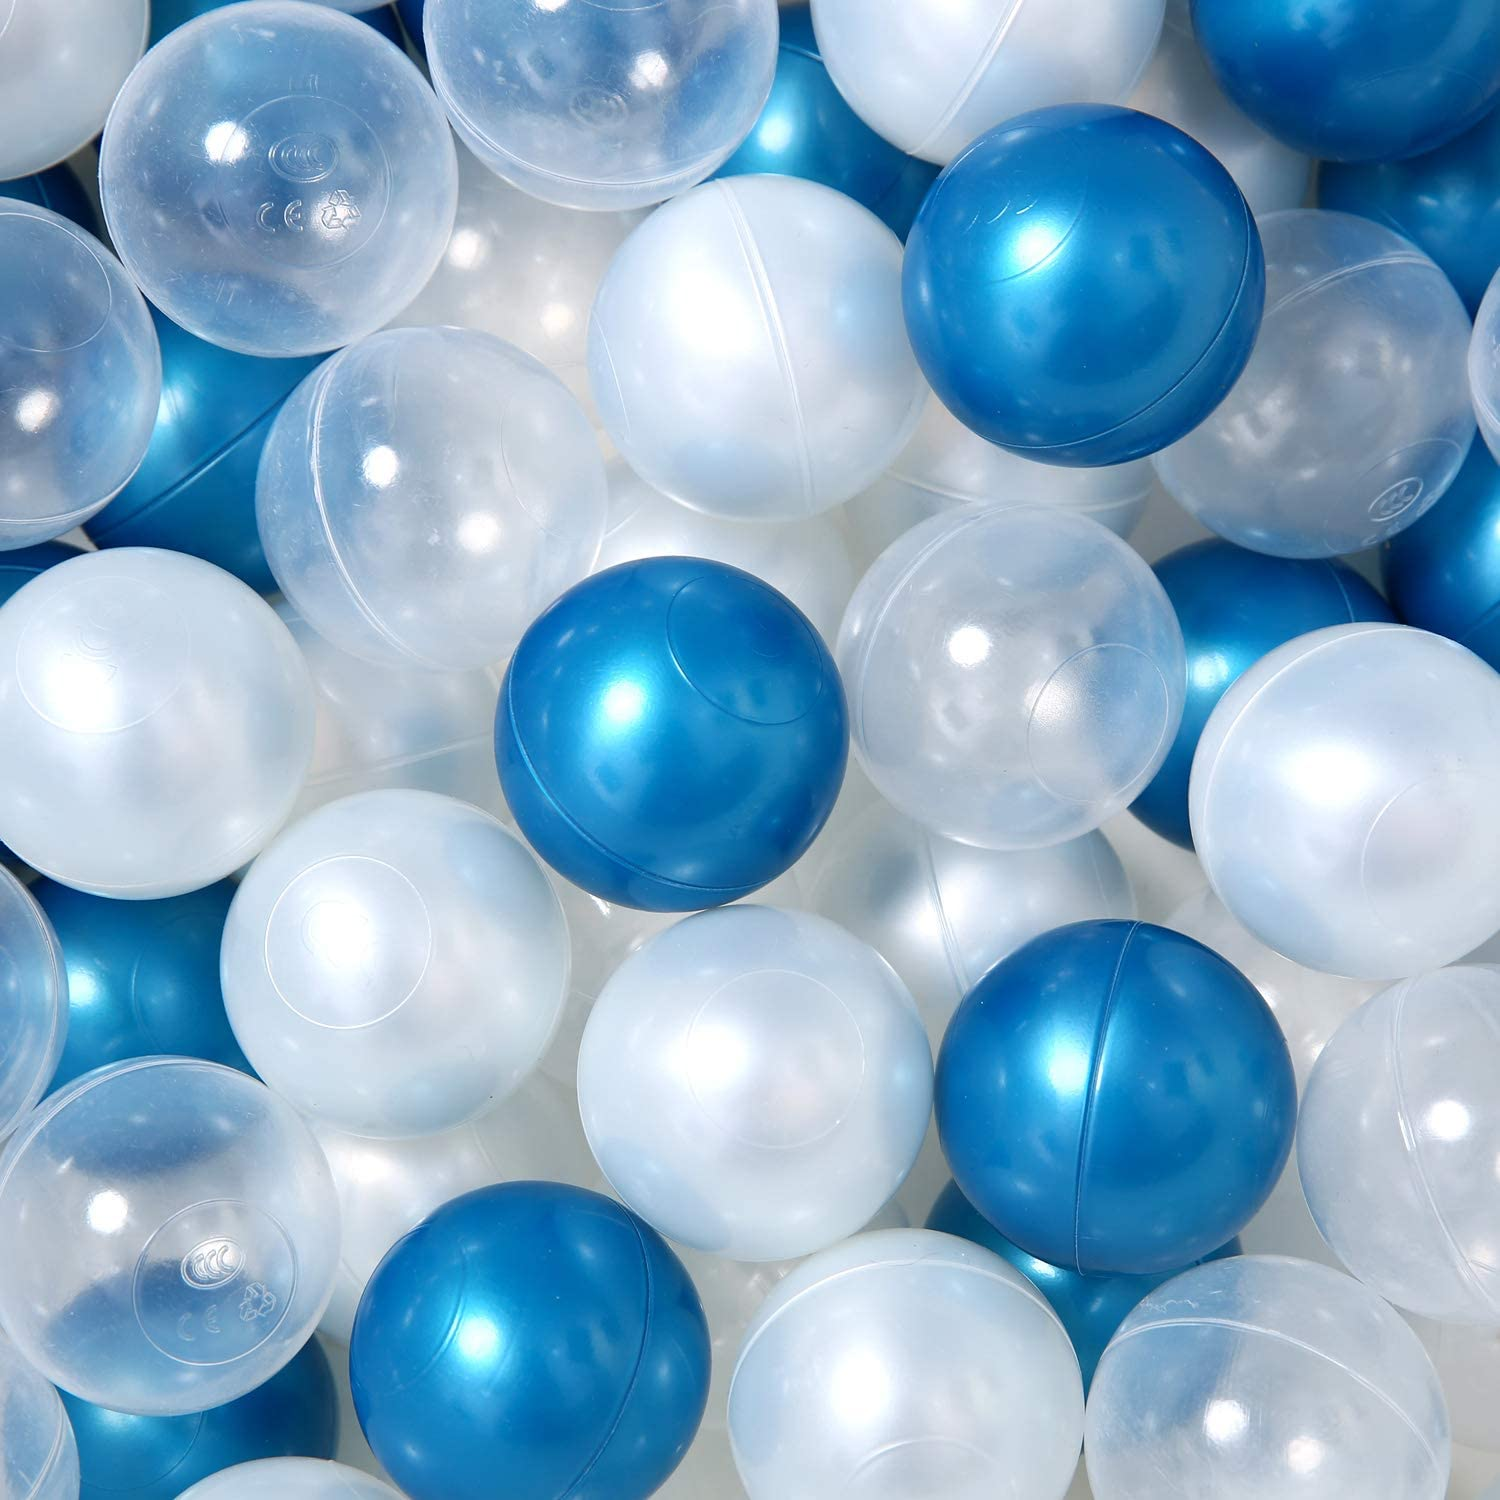 GOGOSO Ball Pit Balls BPA Free Play Ball Pack of 100 Plastic Balls Crush Proof Baby Play Crawl Ball 2.2 Inch Best for Baby Boy Birthday Party; Trampoline or Baby Dog Cat Toys